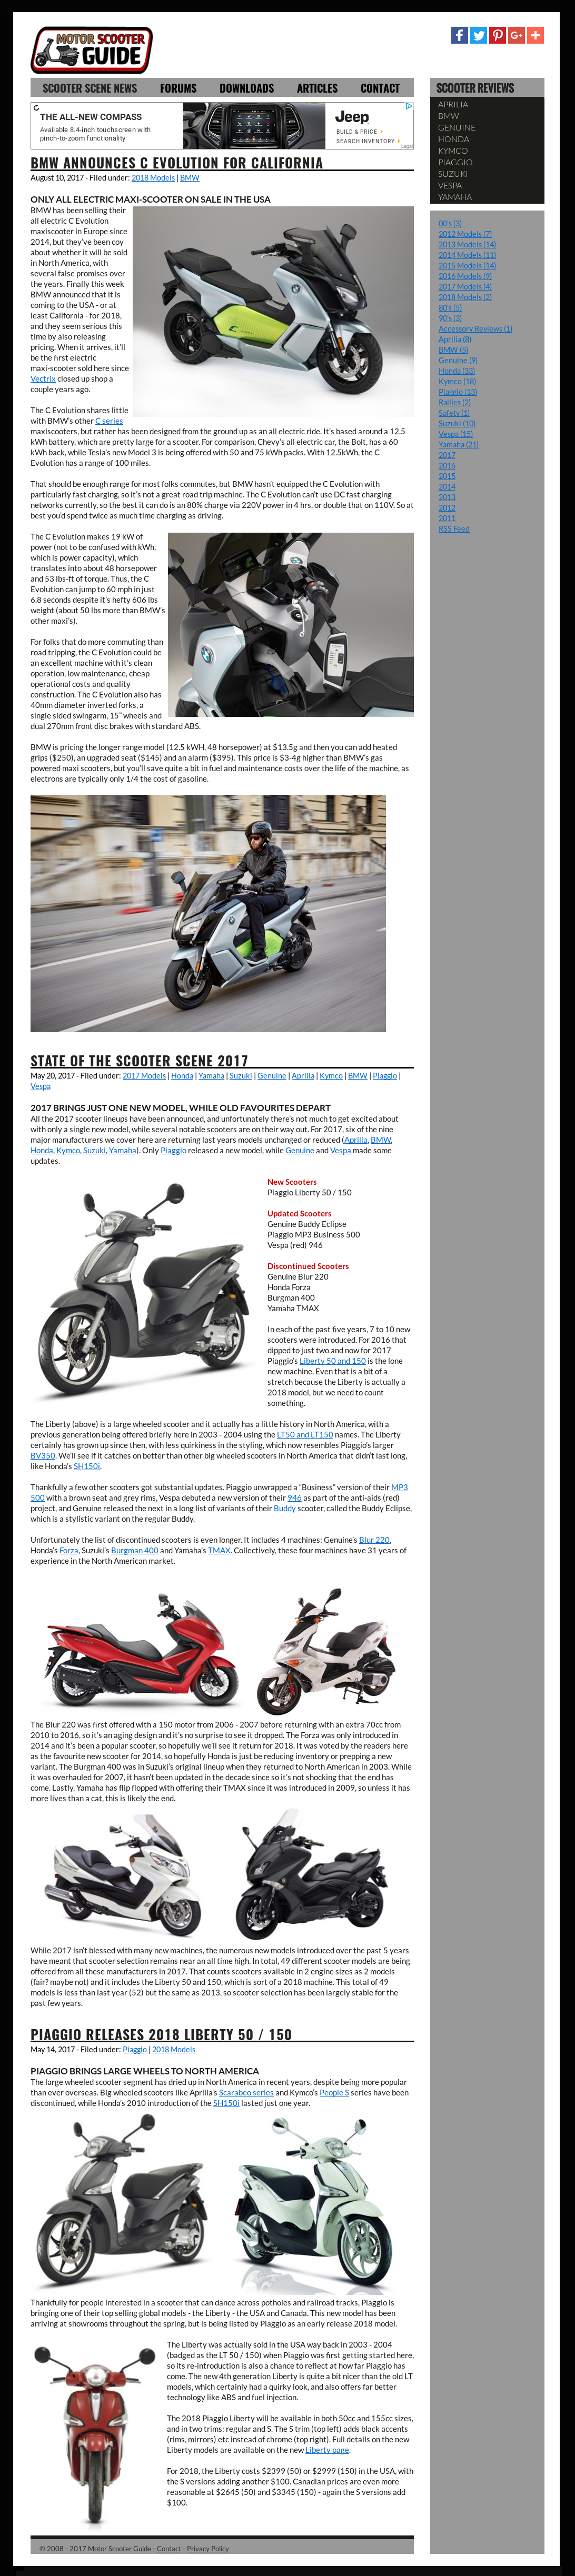 Motor Scooter Guide Competitors, Revenue and Employees - Owler